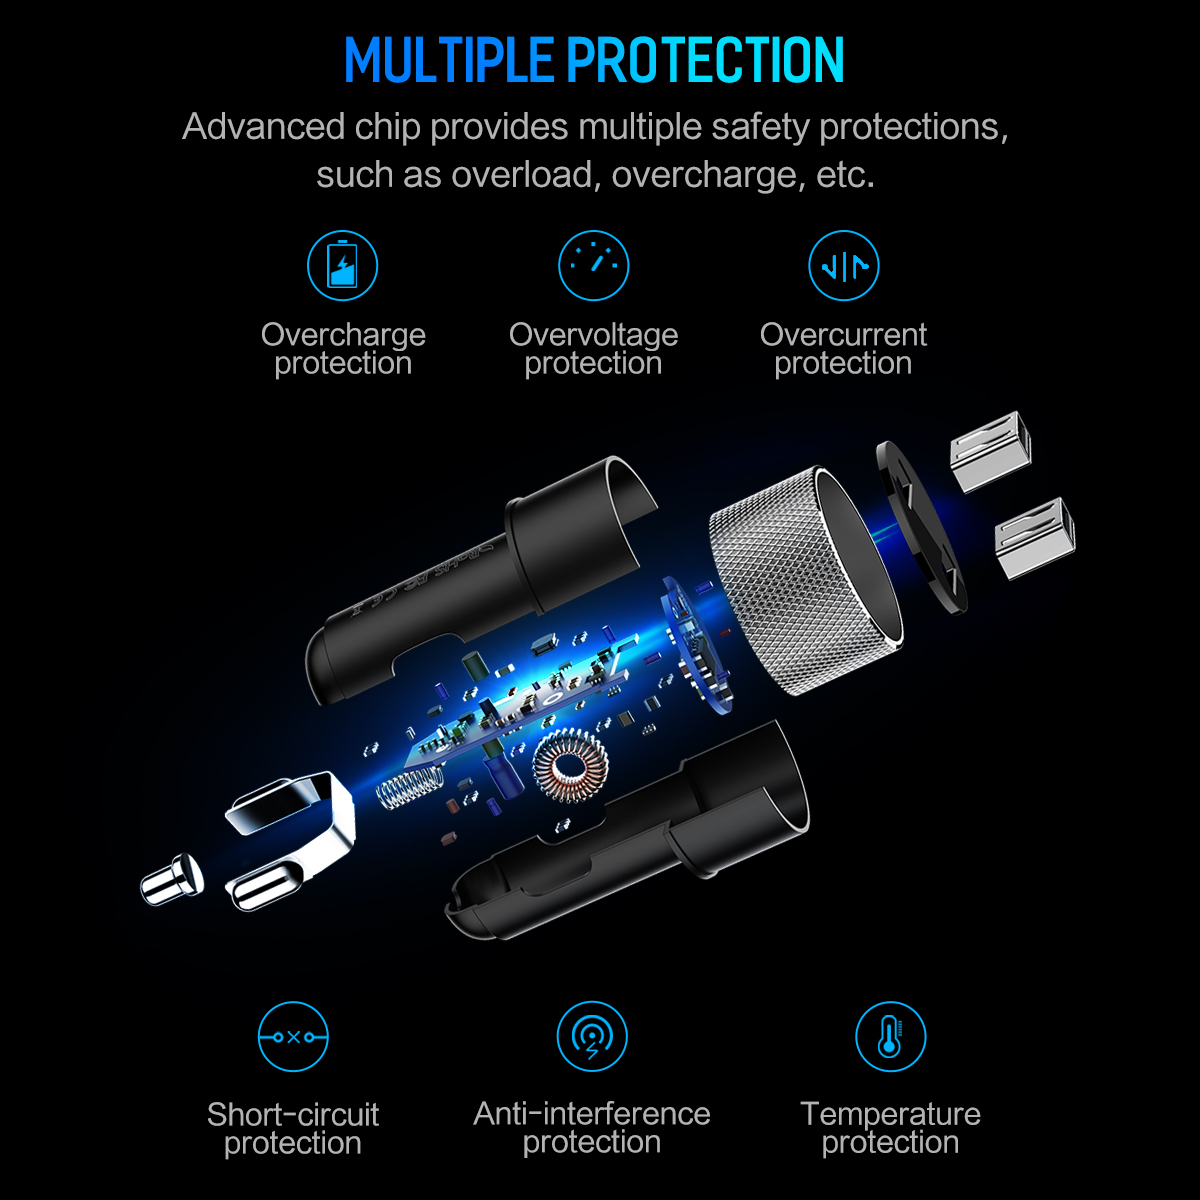 HTB1iv1EA21TBuNjy0Fjq6yjyXXaP - ROCK 5V 3.4A Metal Dual USB Car Charger Digital Display For iPhone X 8 XS MAX 7 Xiaomi Samsung Fast Charging Voltage Monitoring